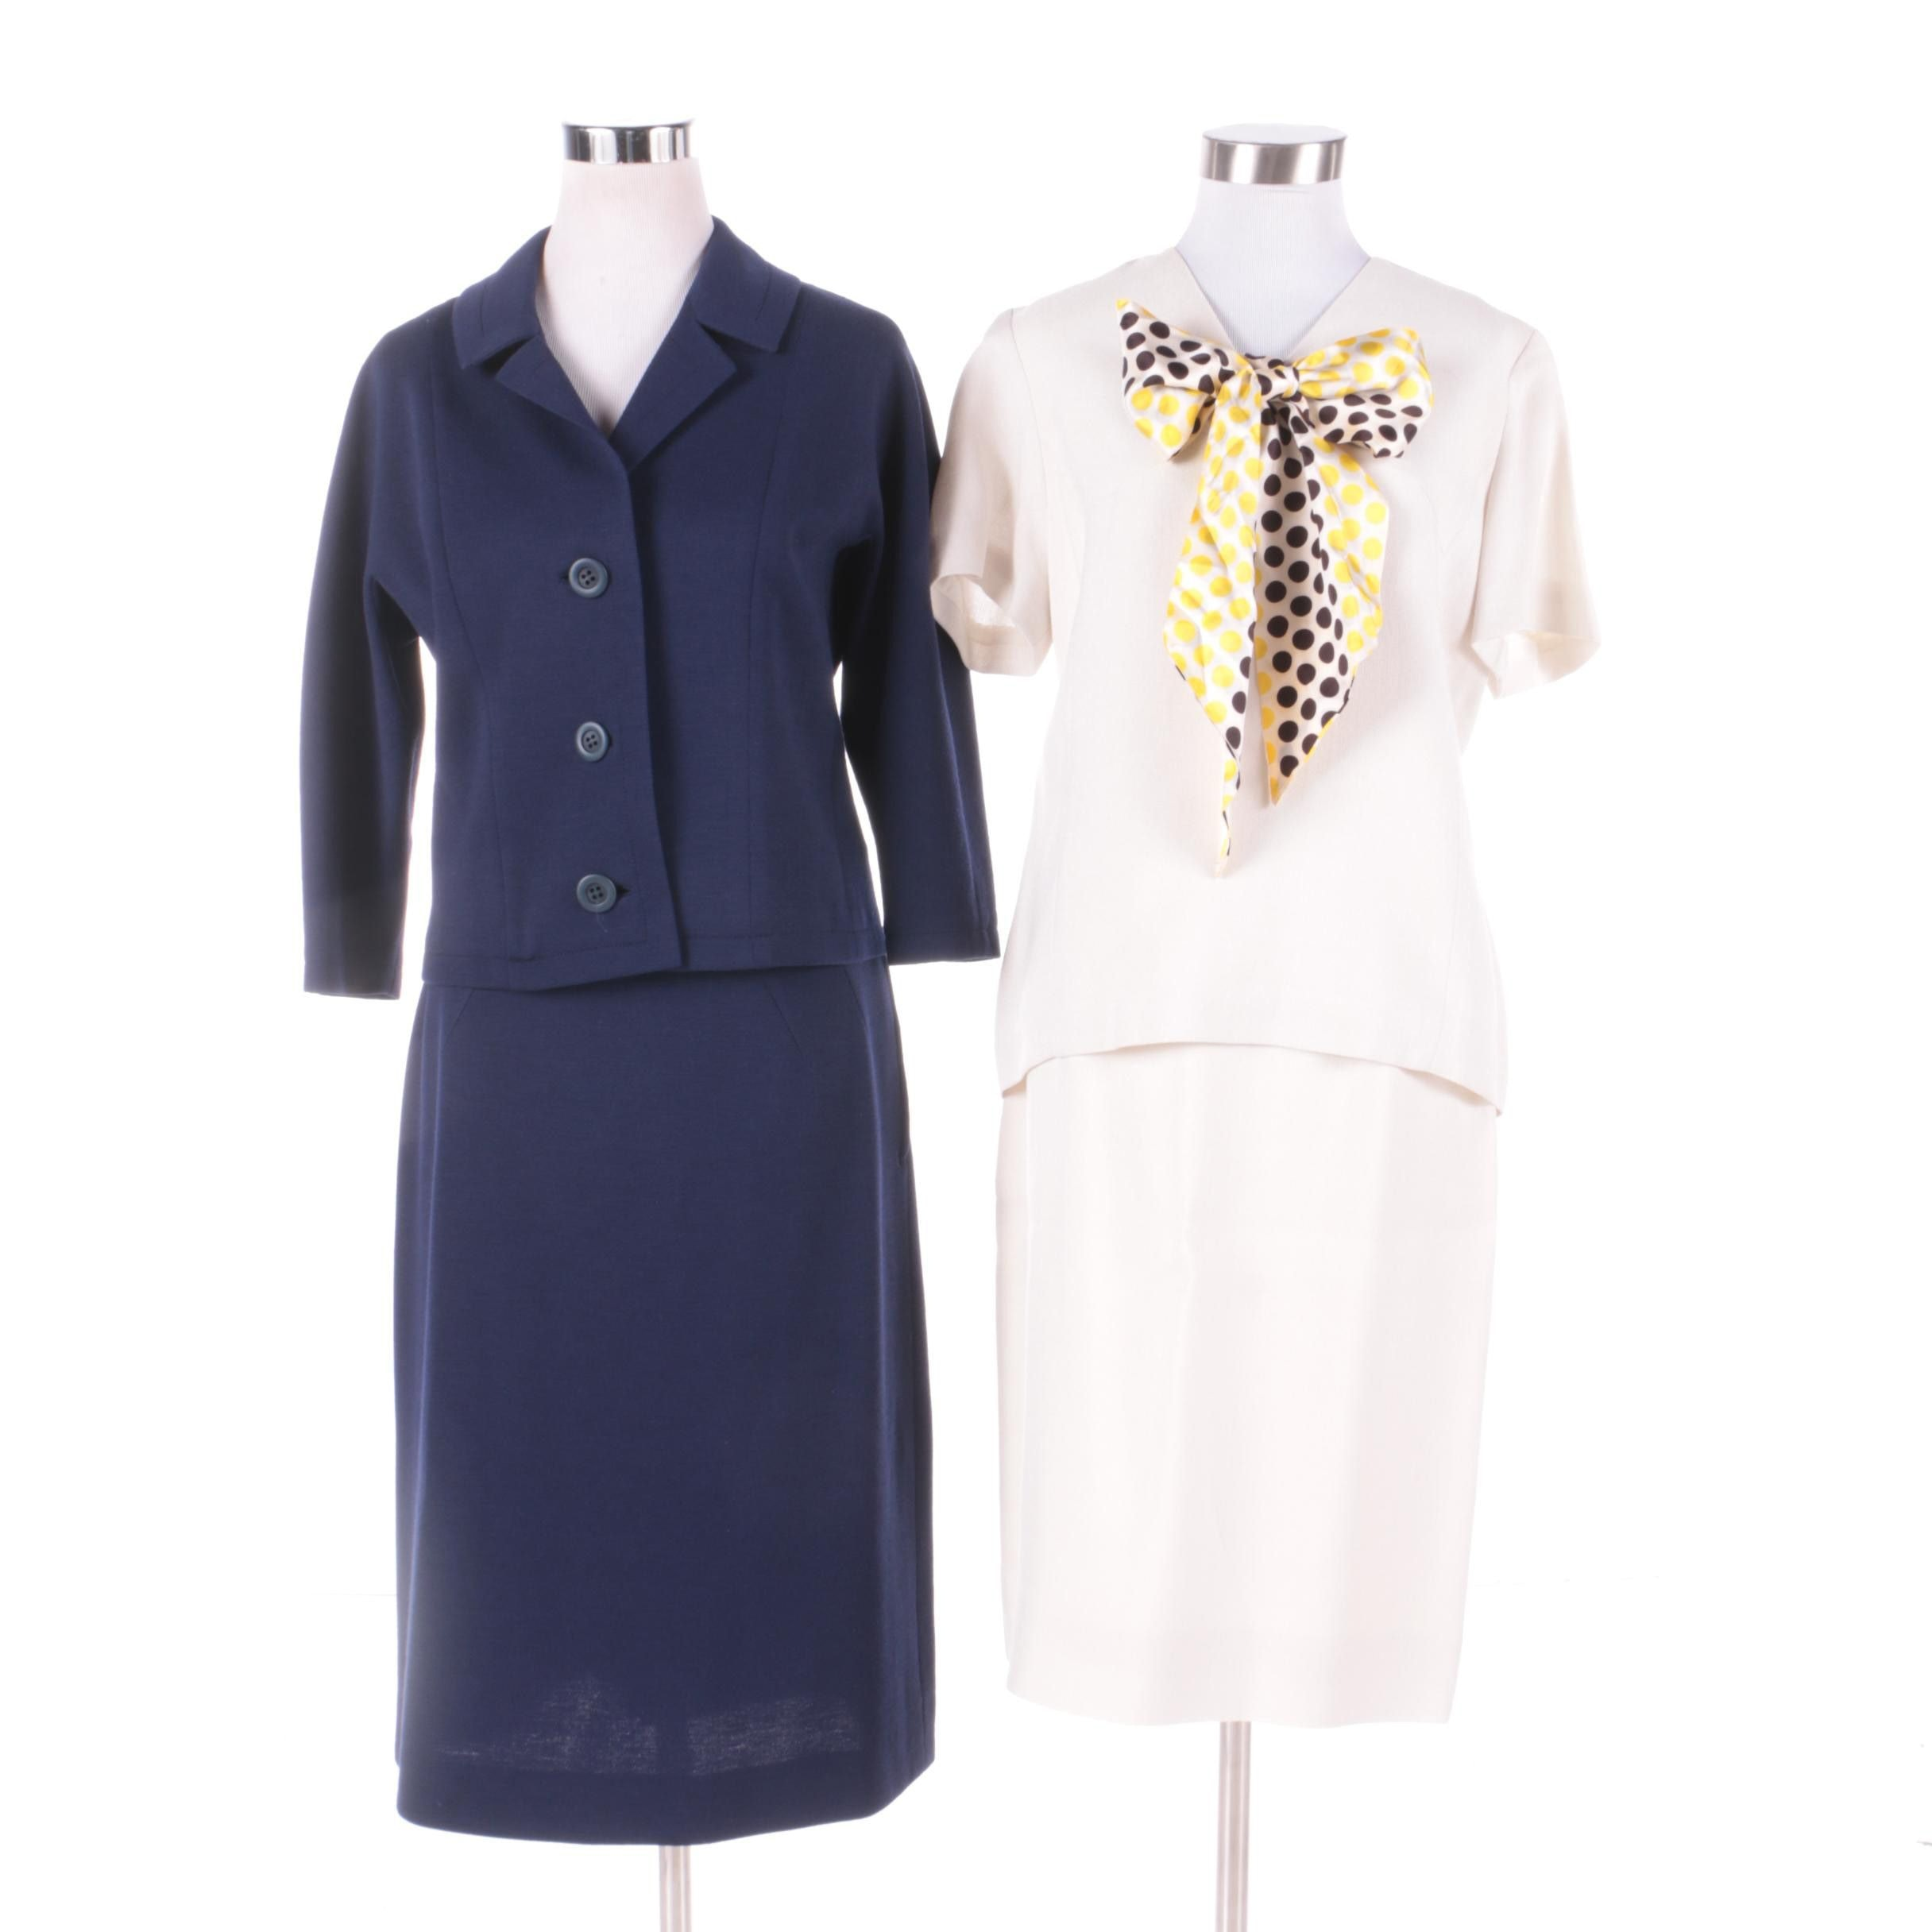 Mid-20th Century Navy and Cream Summer Skirt Suits Including Pierre Delaneau